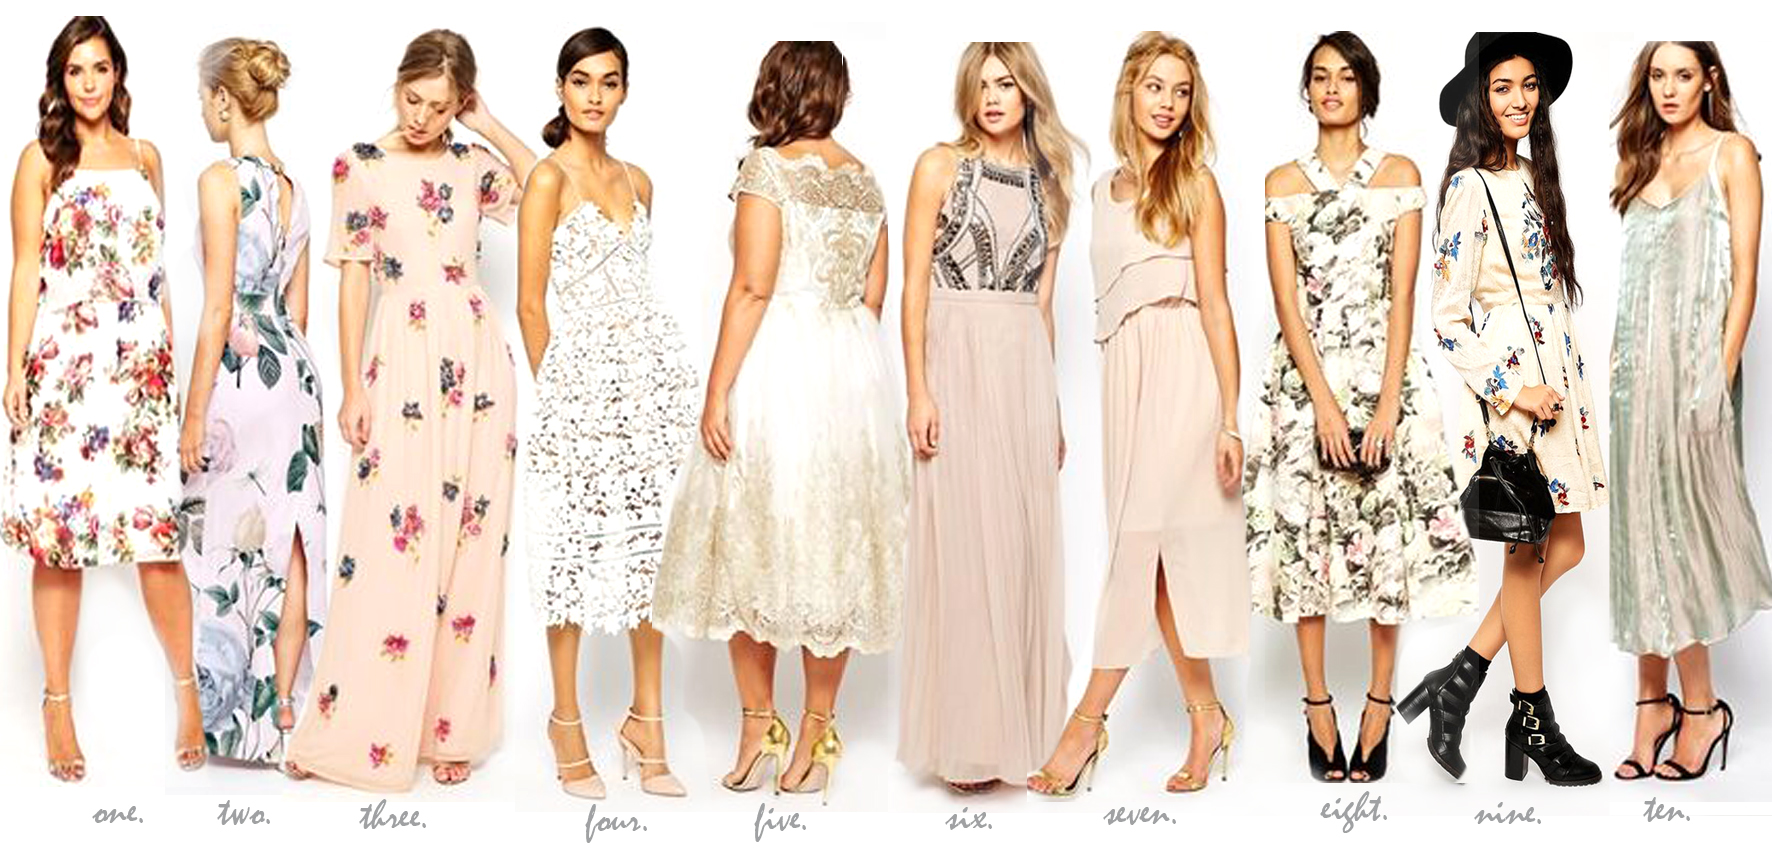 ARE WE BEAUTIFUL?: VINTAGE DRESSES FOR WEDDING GUESTS